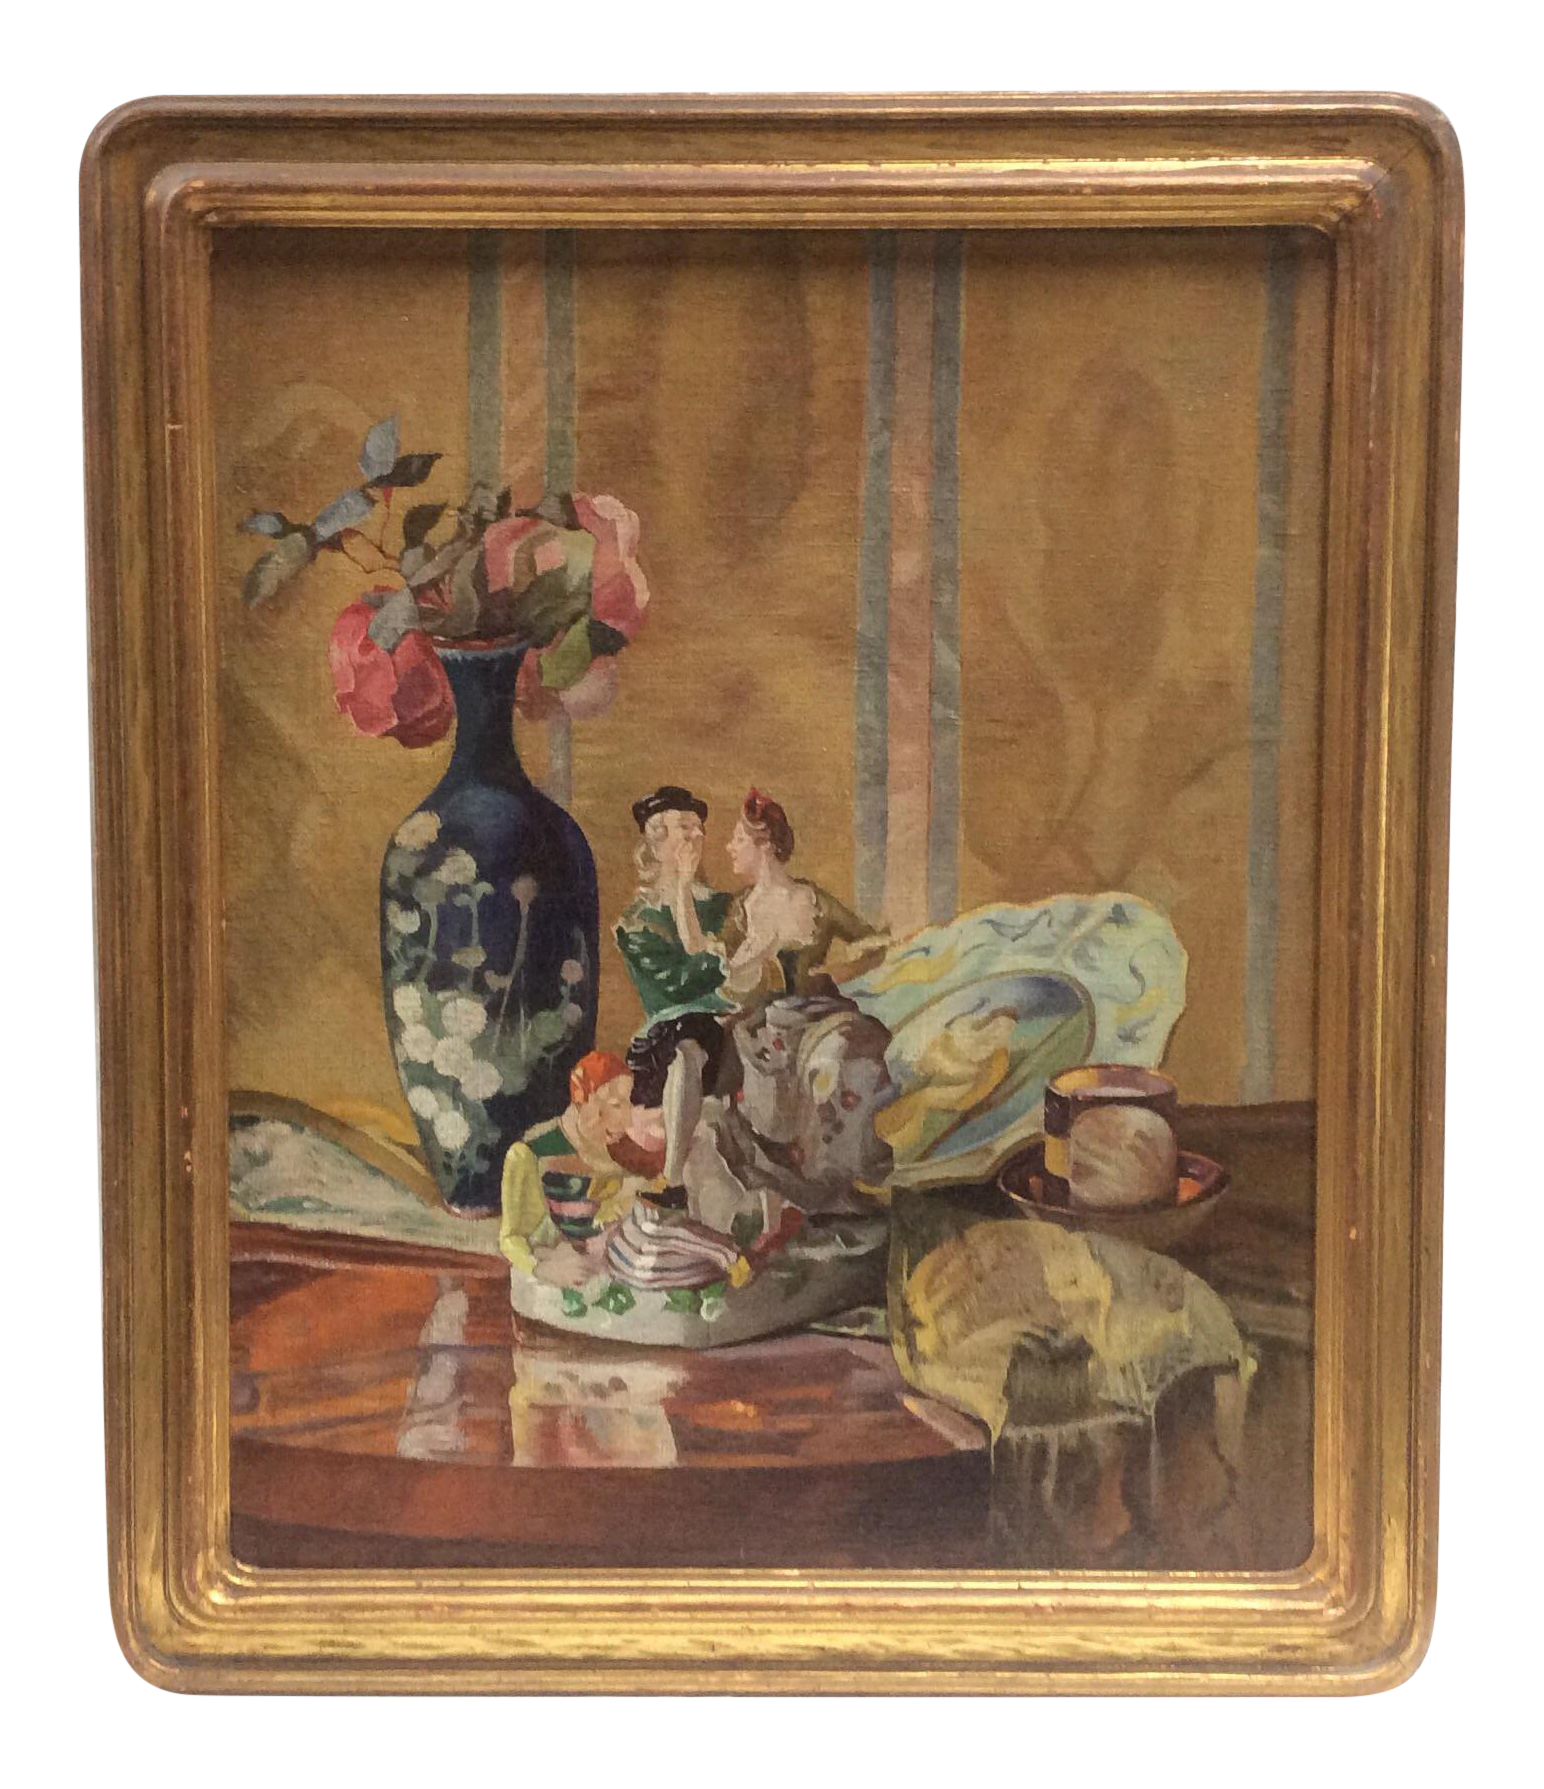 Antique Porcelain Figurines Still Life